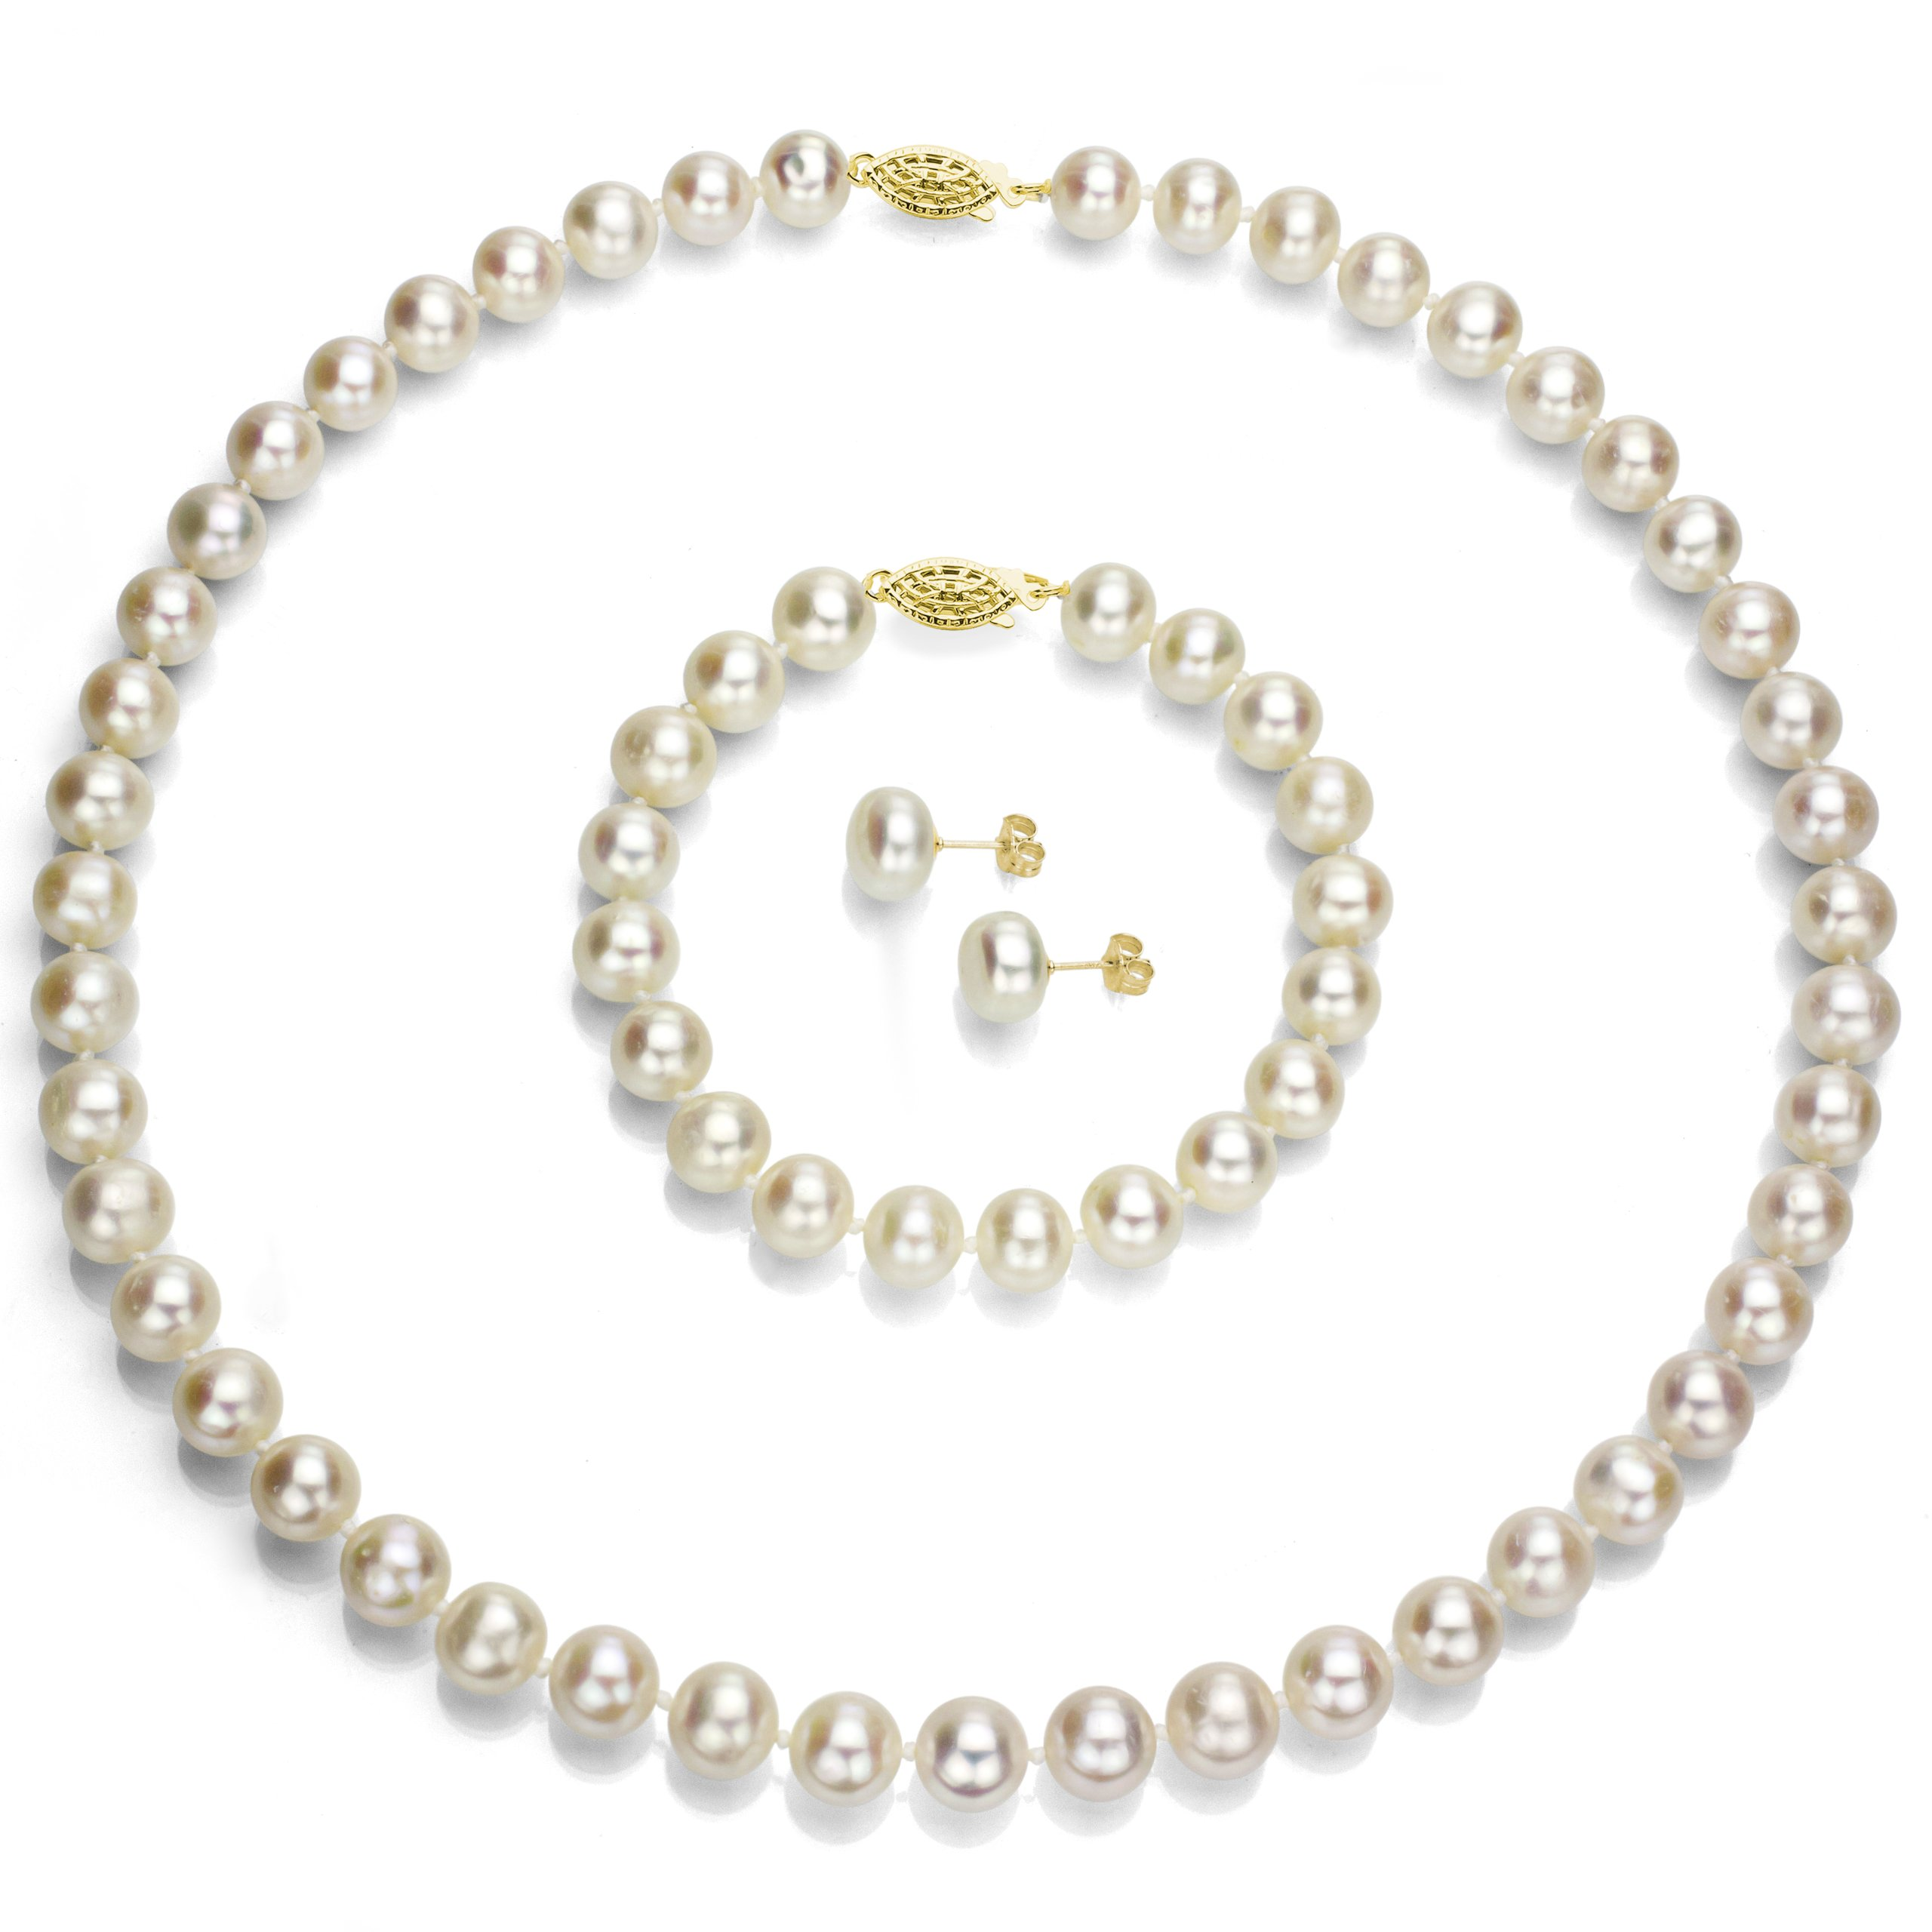 14k Yellow Gold 10-10.5mm White Freshwater Cultured Pearl Necklace 18'', Bracelet 7'', Stud Earrings